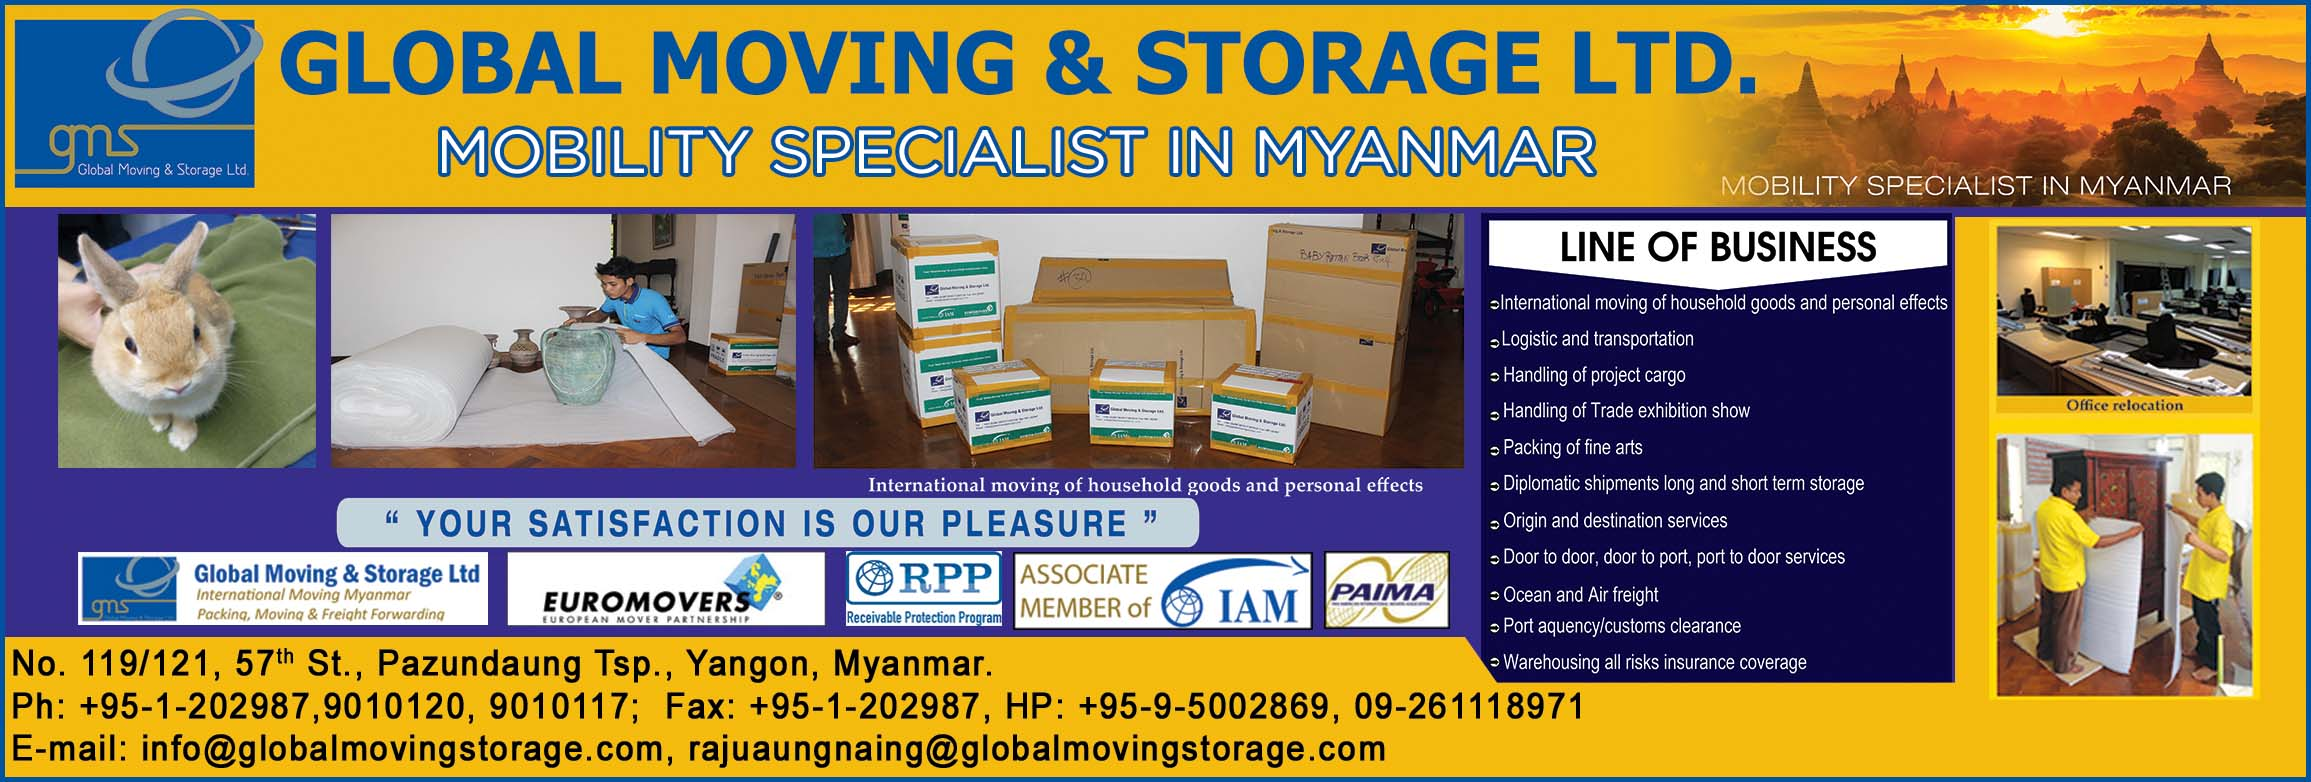 Global Moving and Storage Ltd.